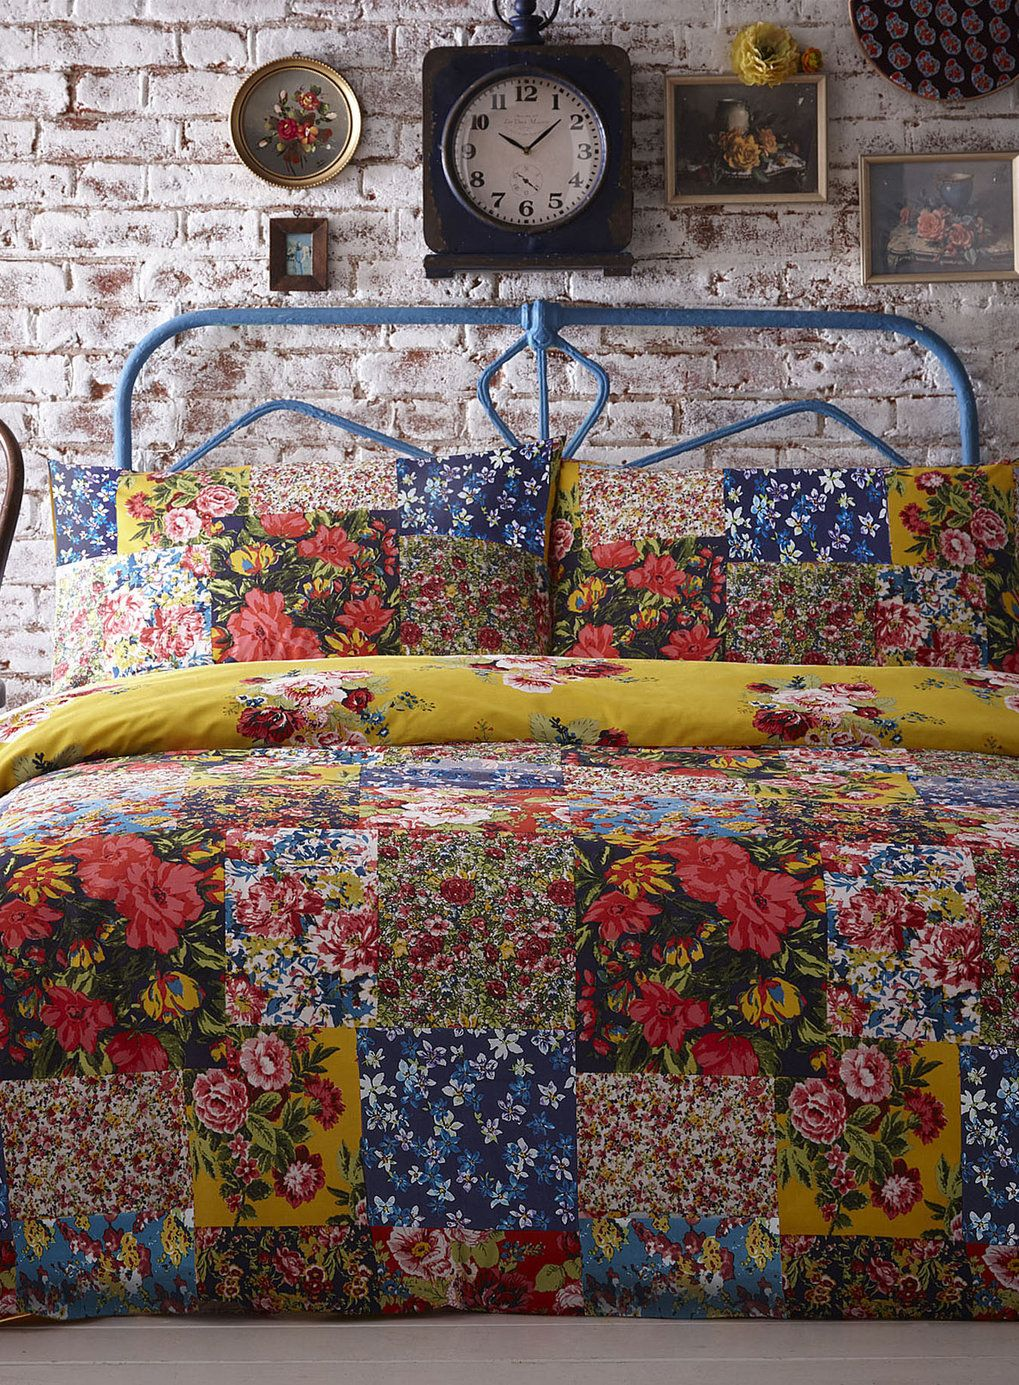 Multi Columbia Patch Bedding Set Bedding Sets Home Lighting Furniture Bhs Bohemian